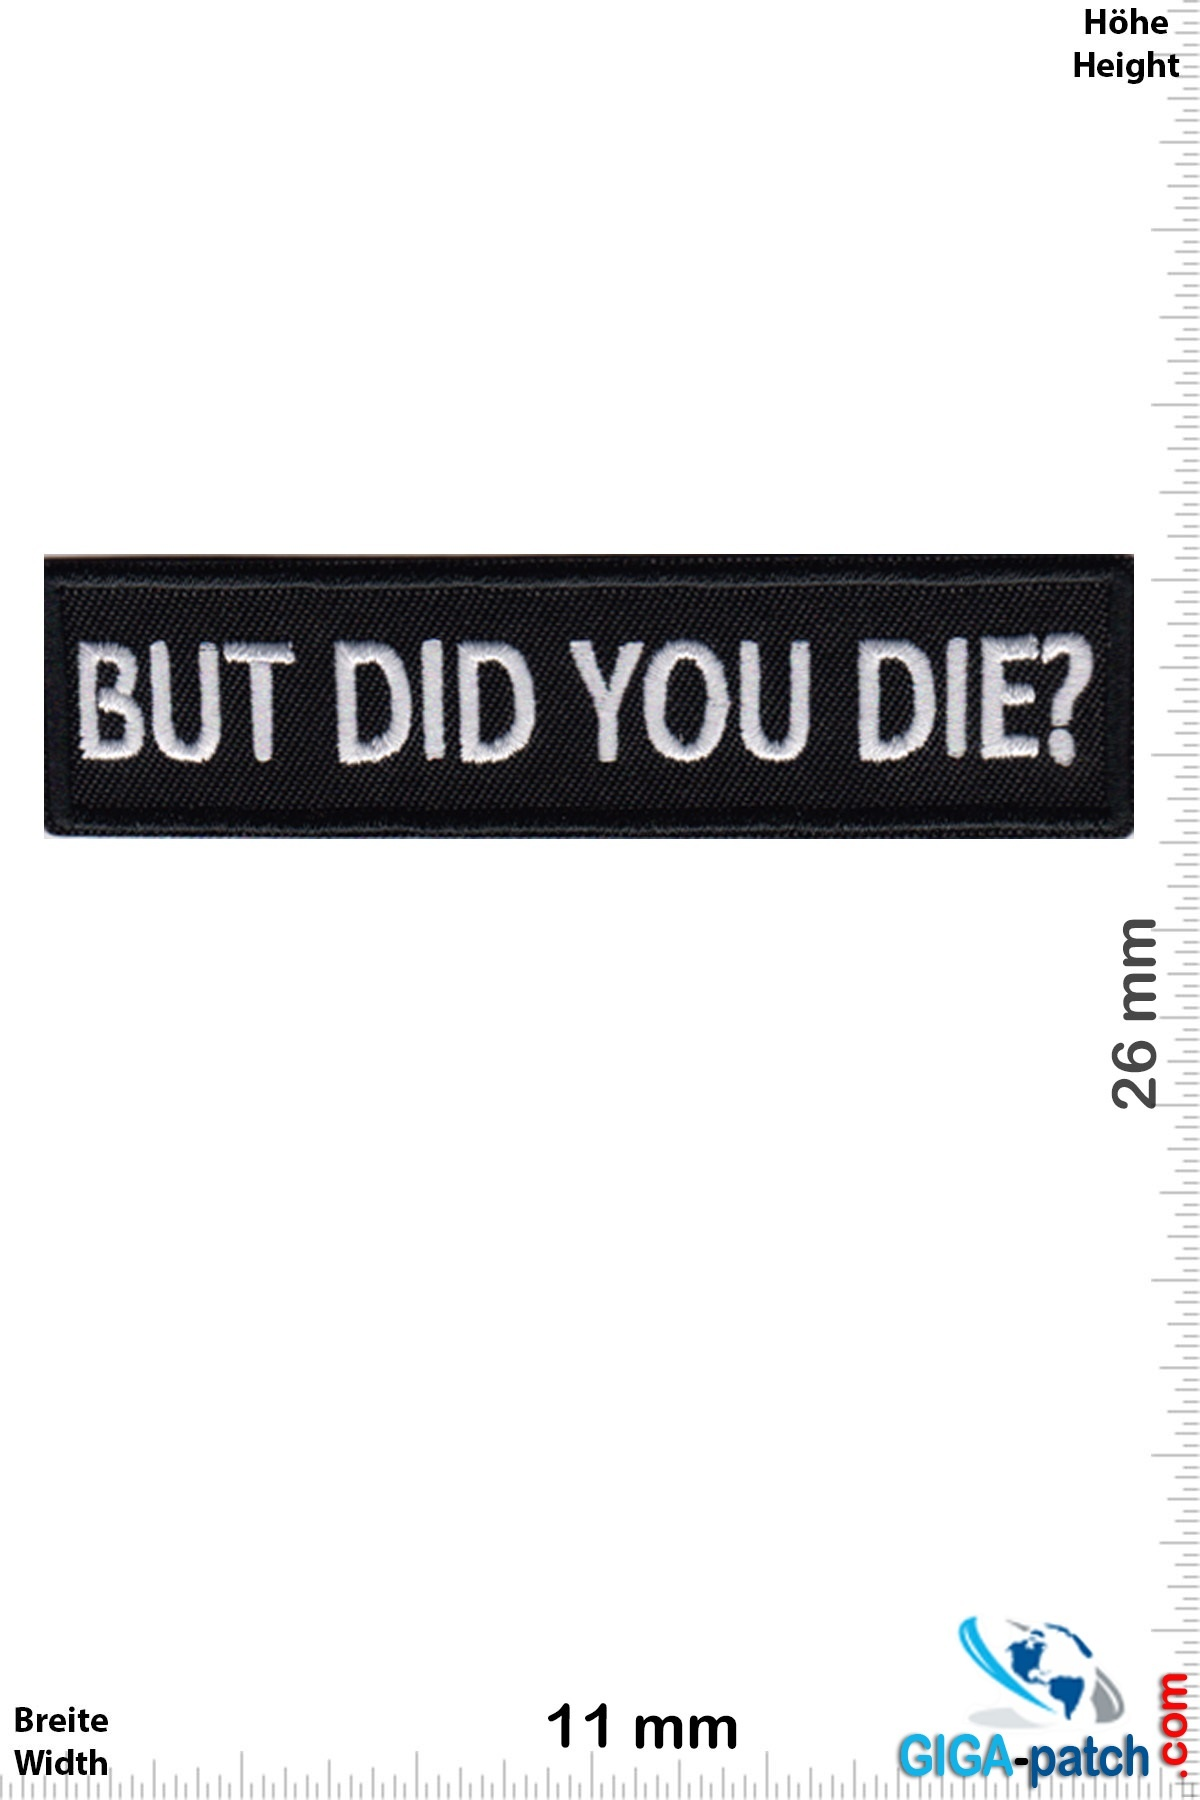 Sprüche, Claims But did you die?